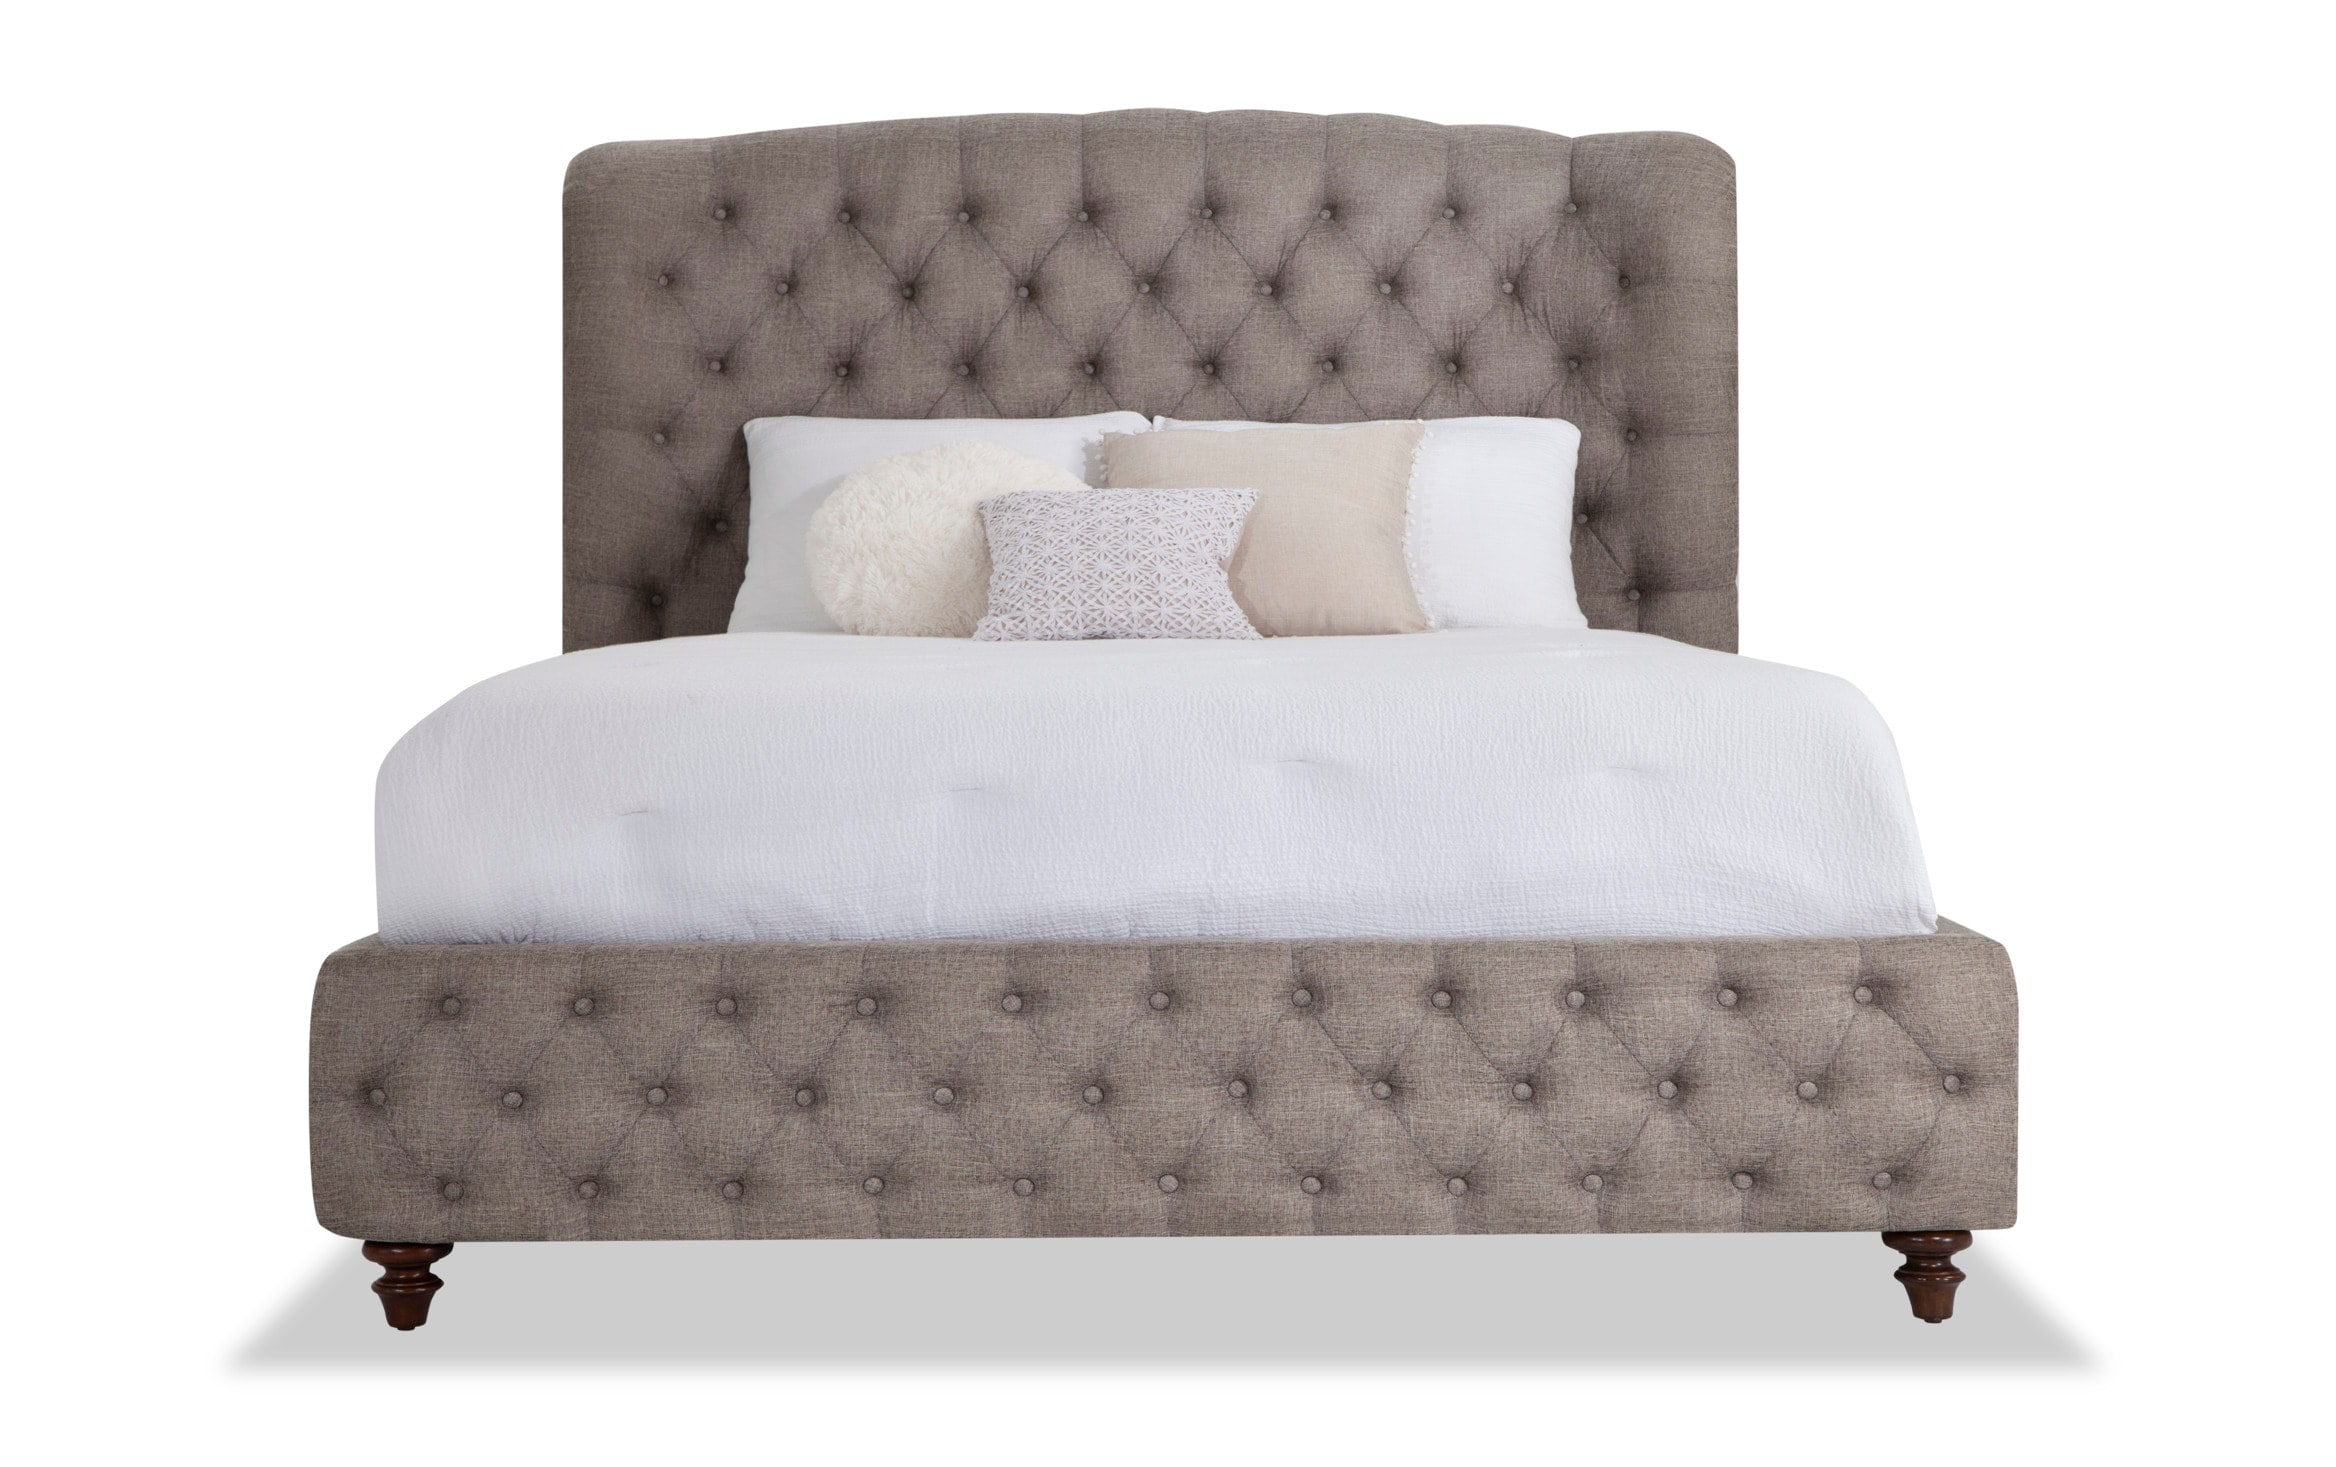 Scarlett Upholstered Queen Bed Bobs Com